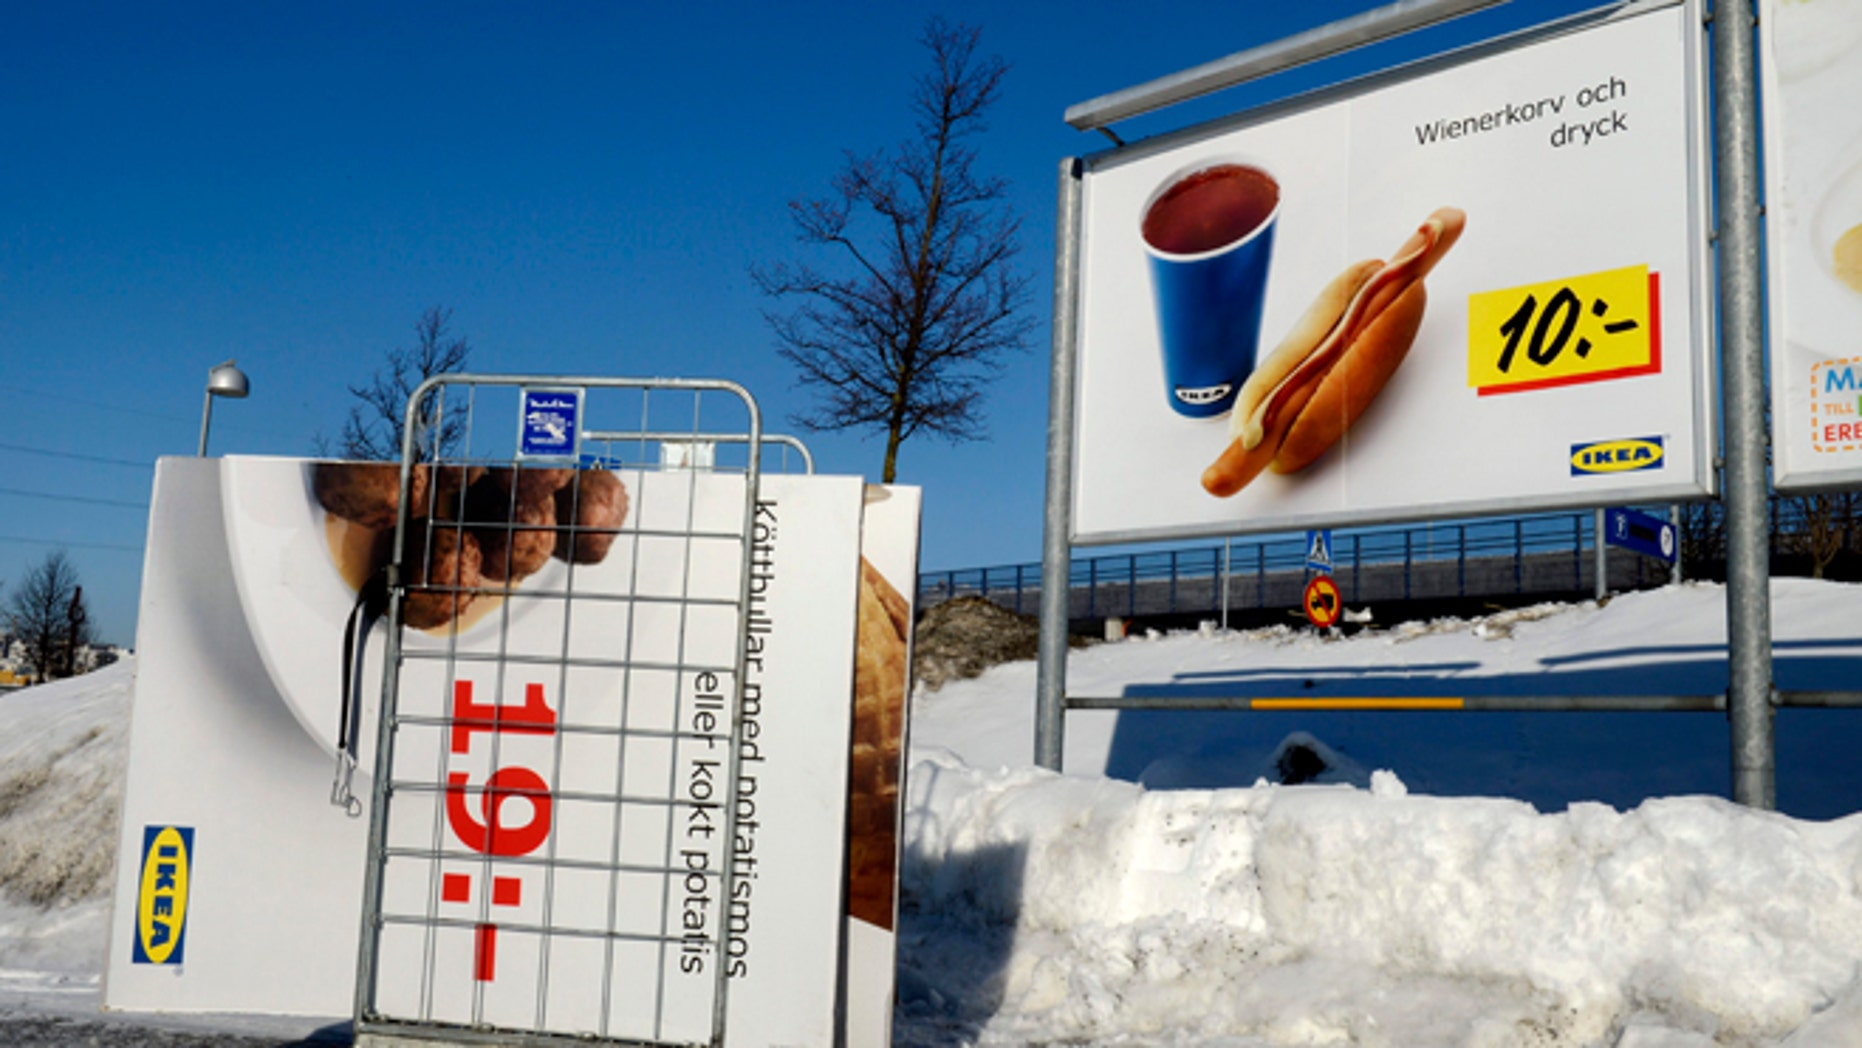 Feb. 25, 2012: Advertising billboards for Ikea meat balls are taken down from a parking at the Ikea store in Stockholm, Sweden. Swedish furniture giant Ikea was drawn into Europe's widening food labeling scandal Monday as authorities in the Czech Republic said they had detected horse meat in frozen meatballs labeled as beef and pork and sold in 13 countries across the continent.